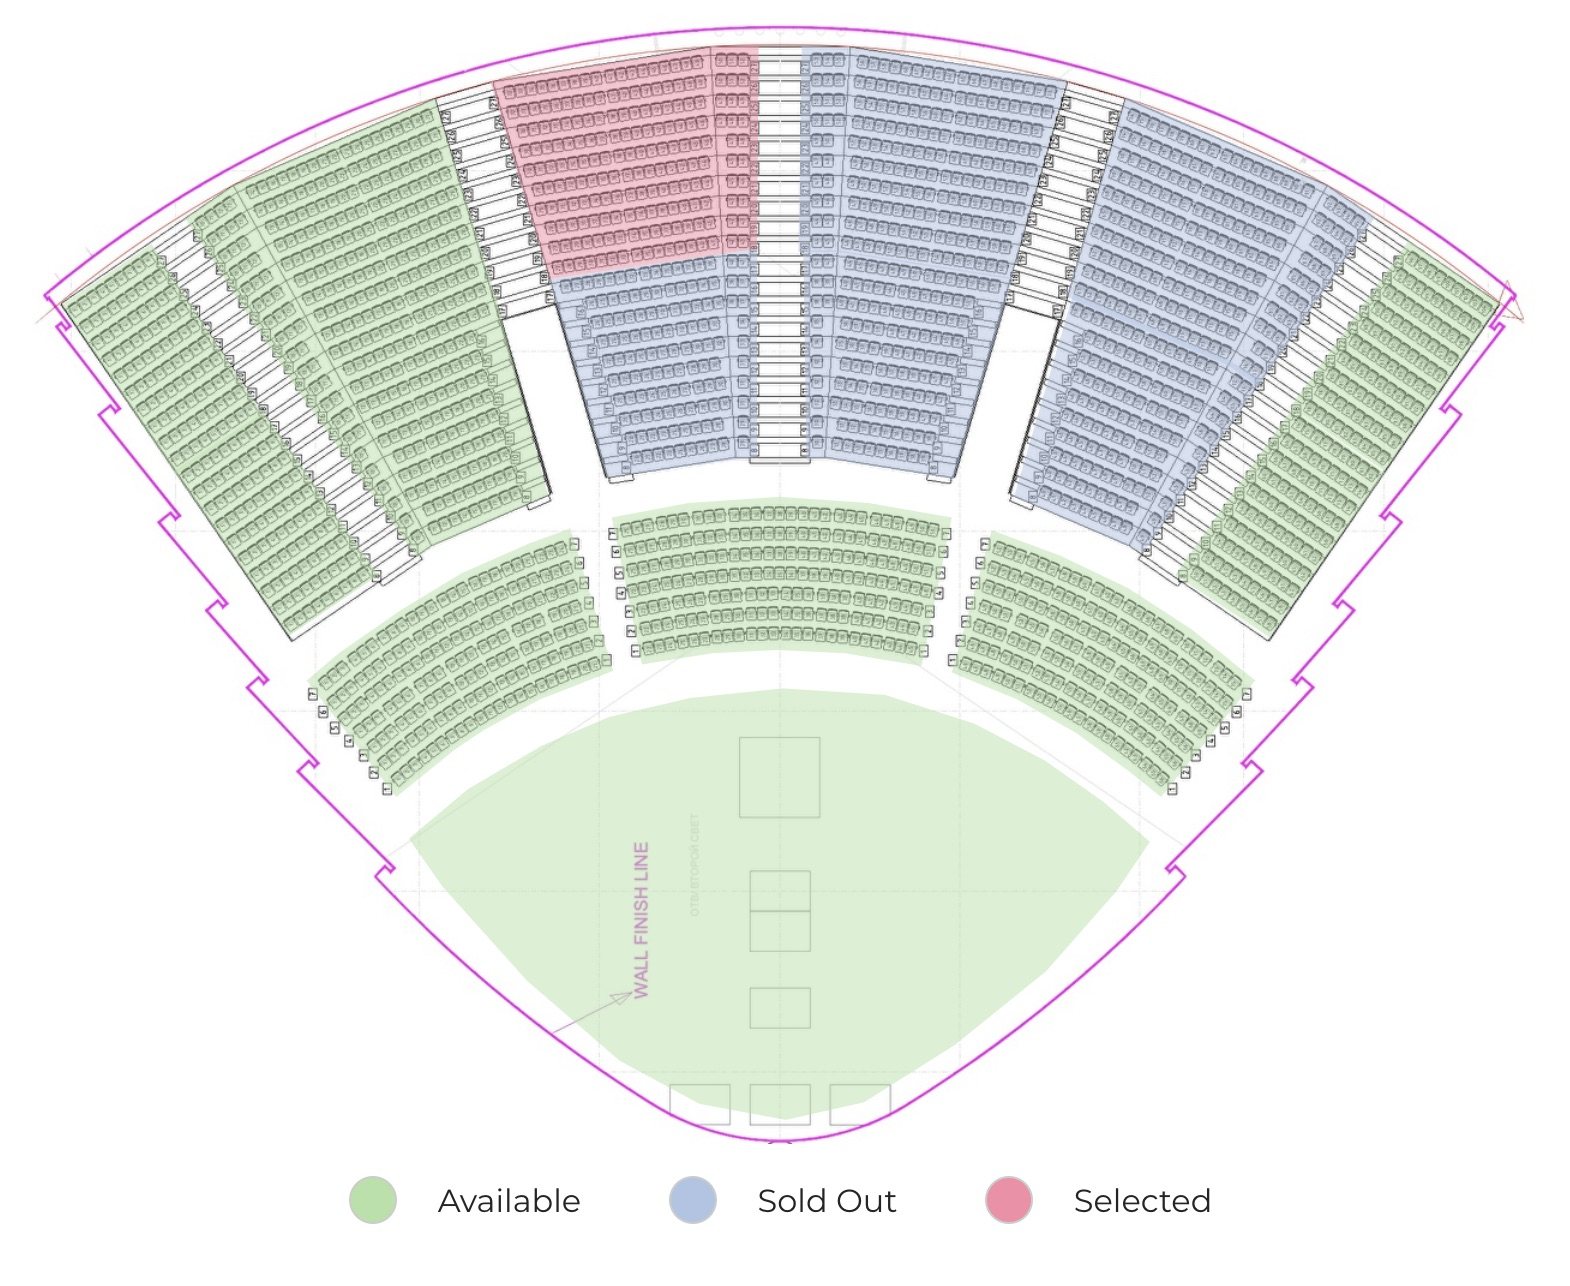 Interactive MyTicket Concert Hall design example with seating chart selection